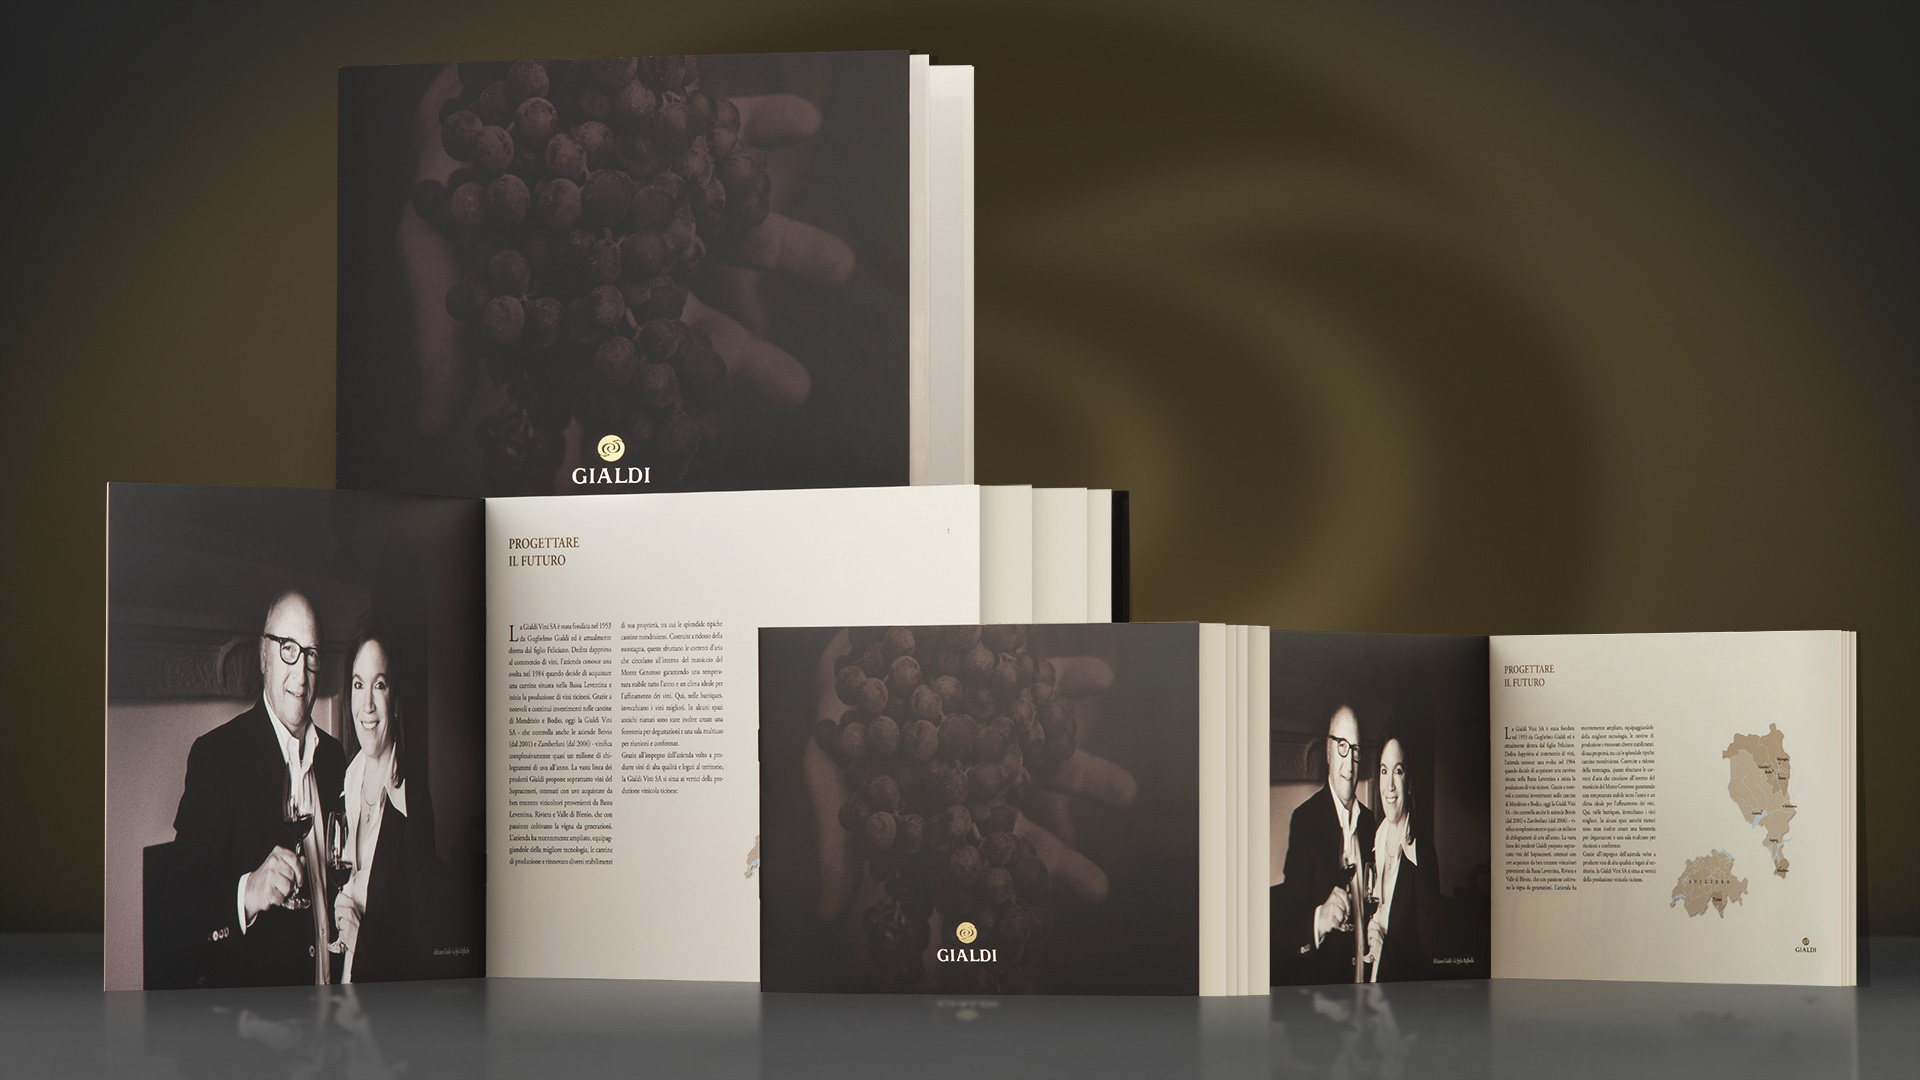 Gialdi brochure global design